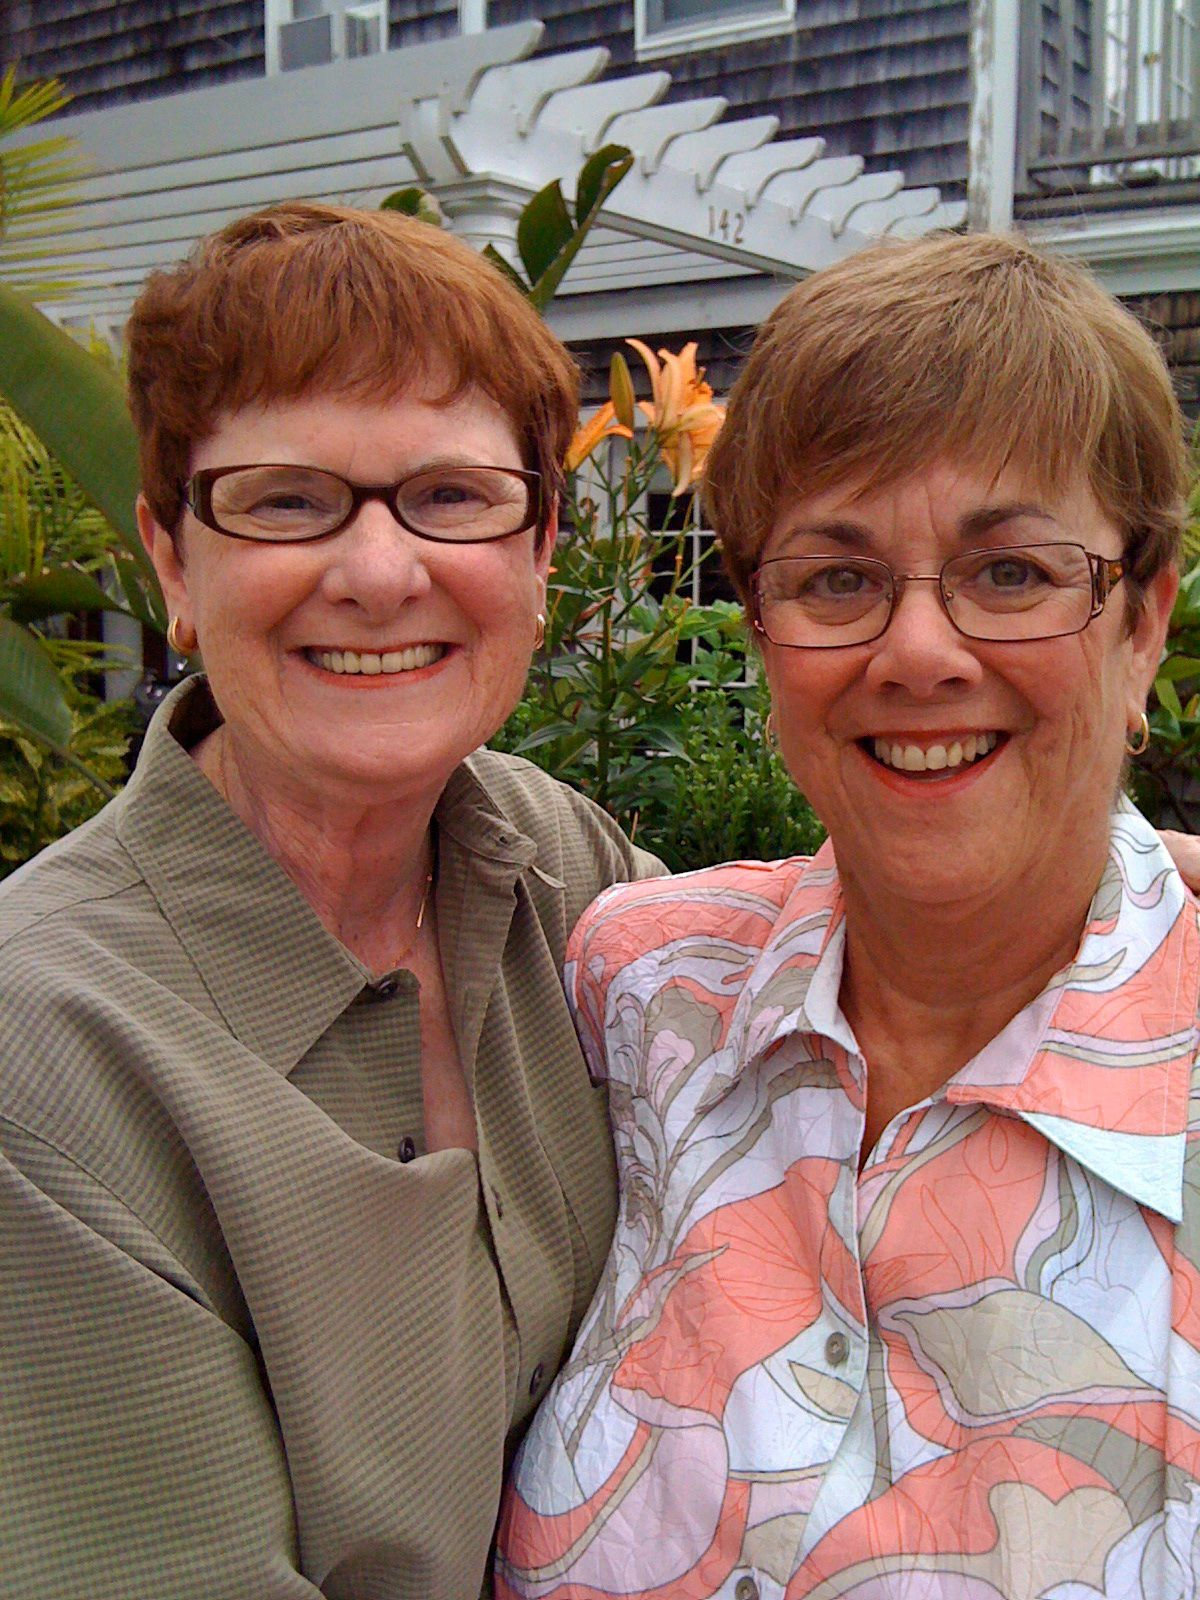 Mary Walsh (left) and Bev Nance at their 2009 wedding in Provincetown, Massachusetts.